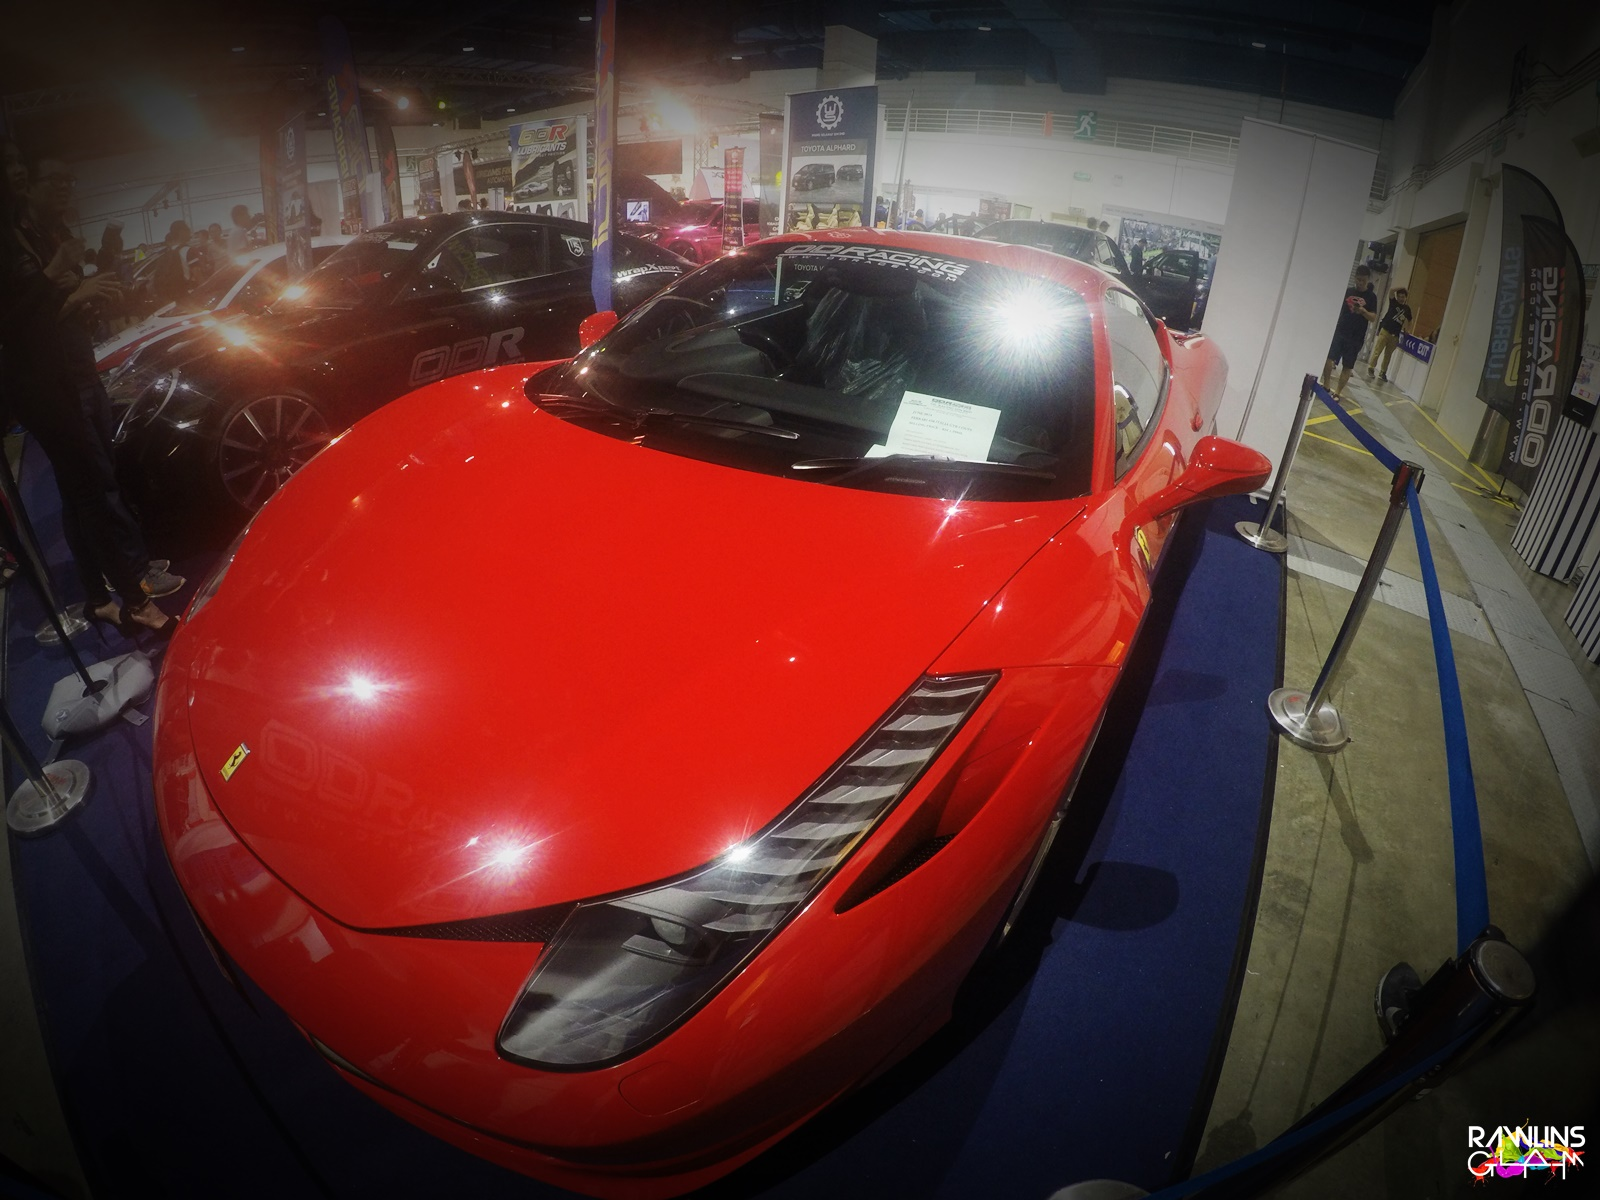 4th Dream Car Expo, Auto Accessories, Auto Show, byrawlins, Ferrari, Golden Land, Lamborghini, Porsche, Rawlins GLAM,